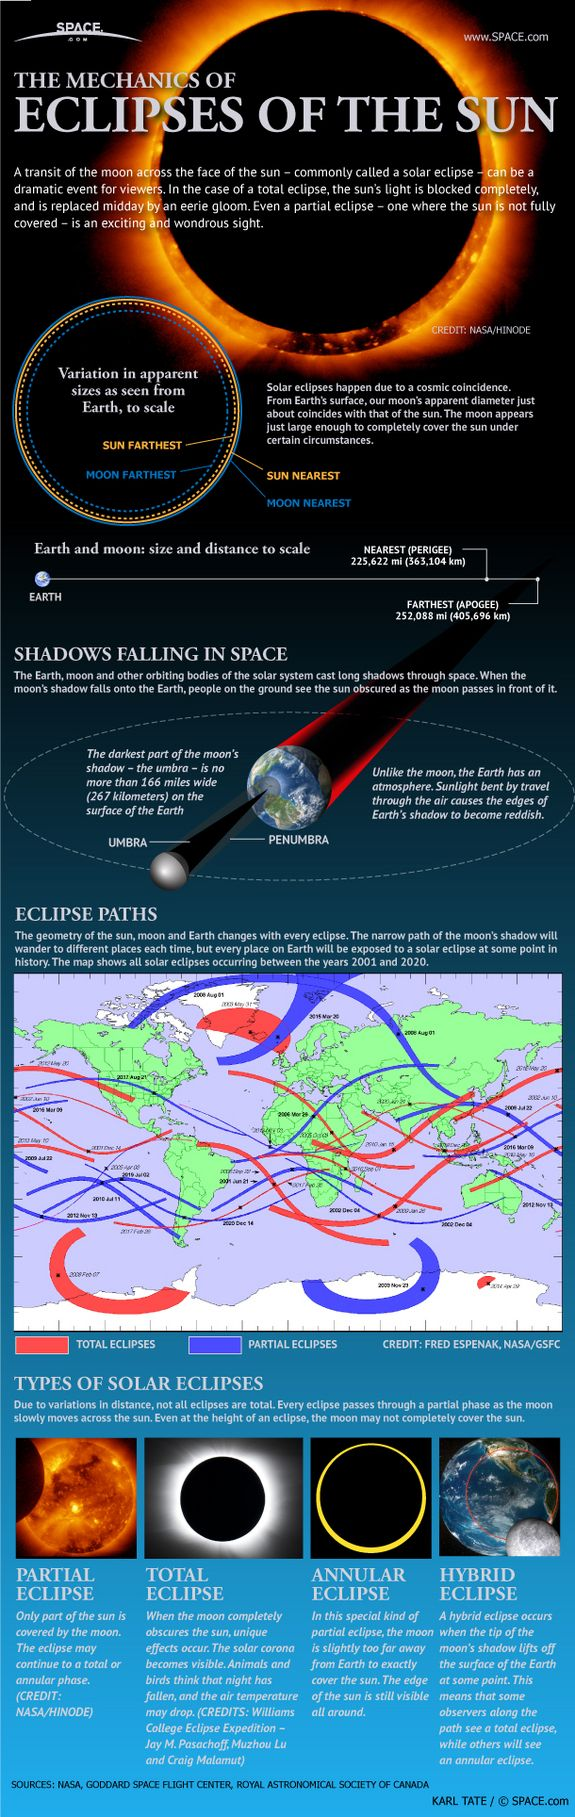 Largest Solar Eclipse Since 1999 Will Plunge UK Into Darkness On 20 March